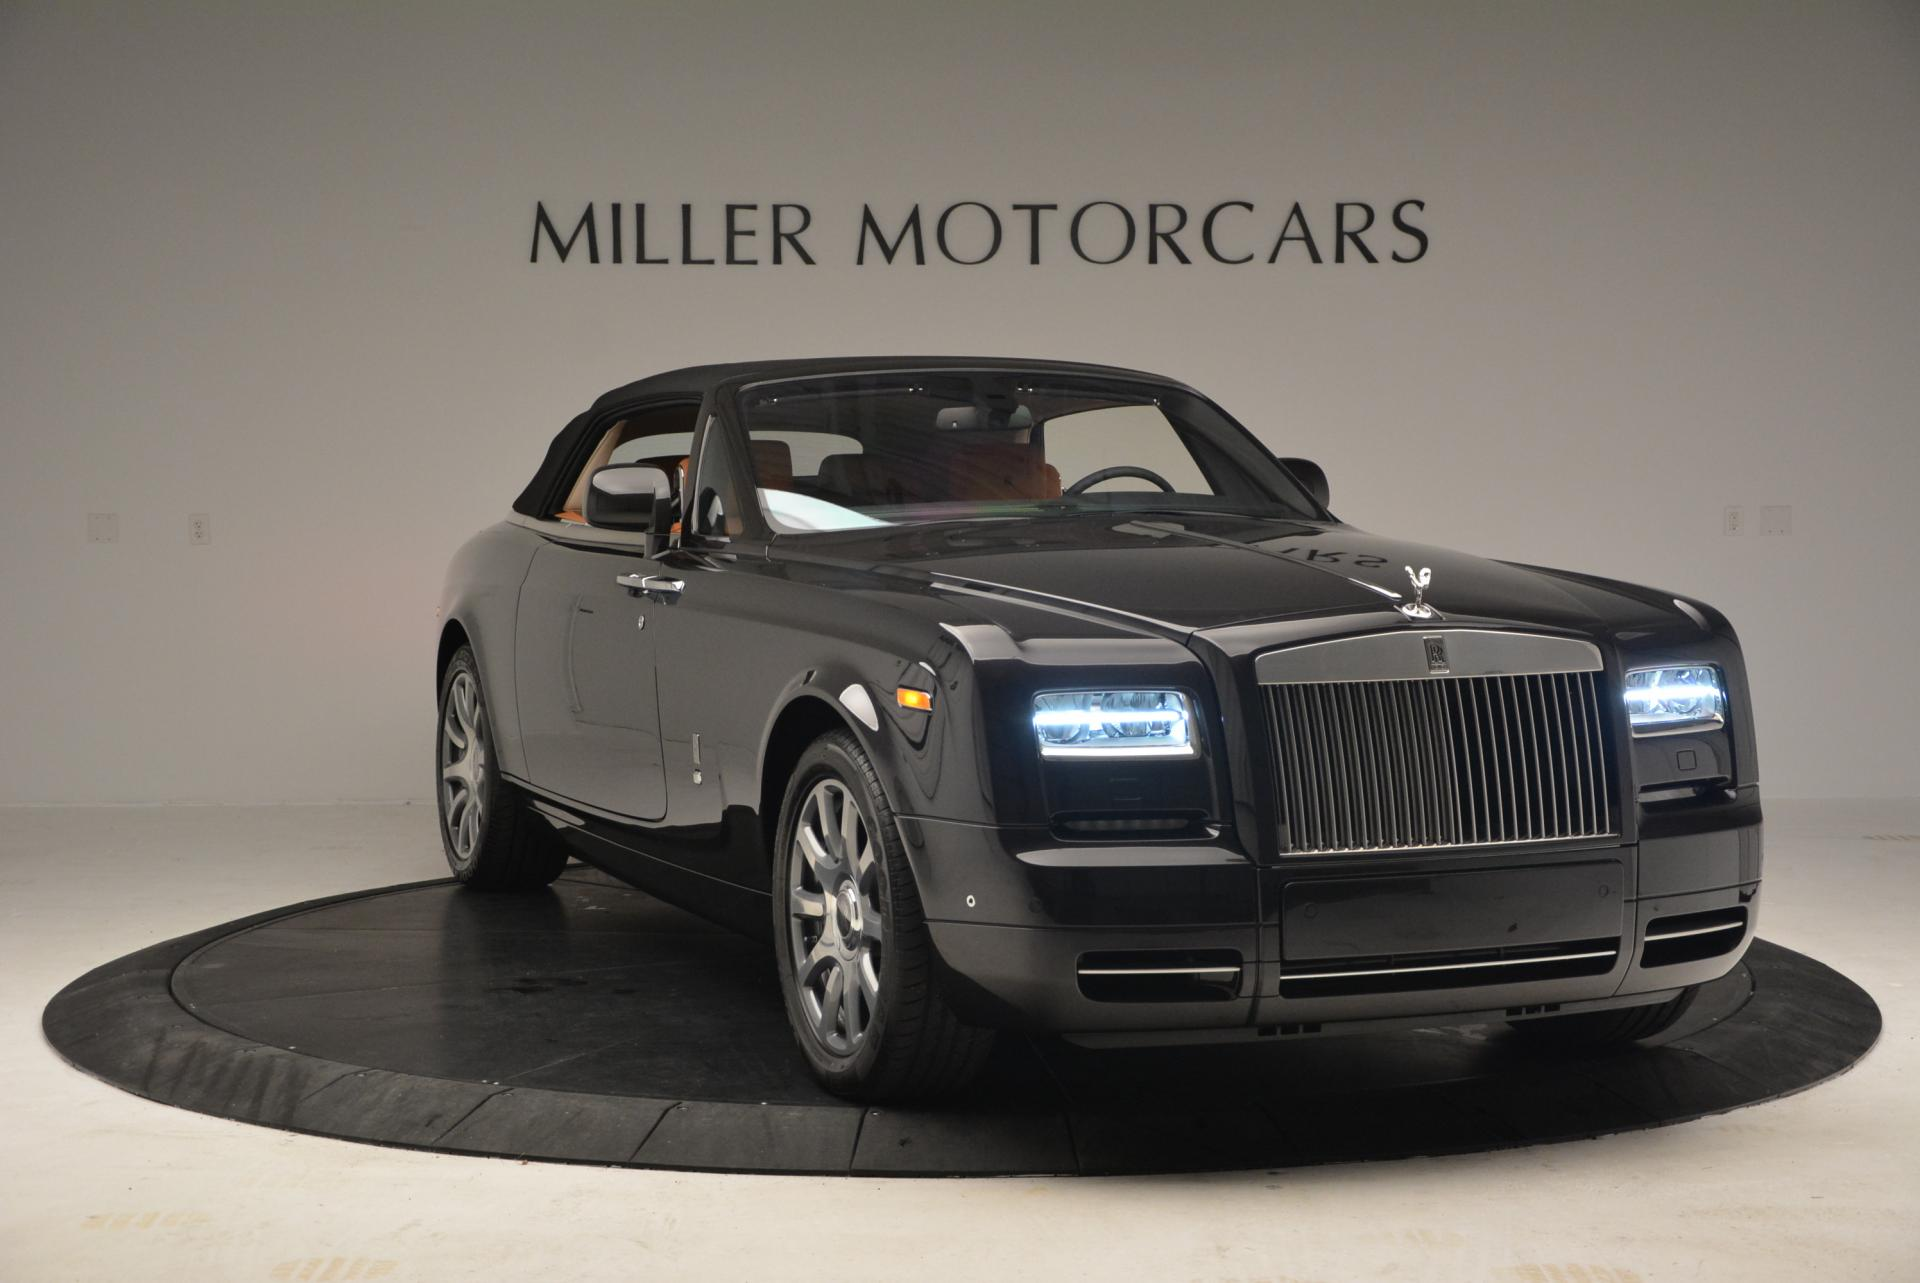 New 2016 Rolls-Royce Phantom Drophead Coupe Bespoke For Sale In Greenwich, CT 208_p21